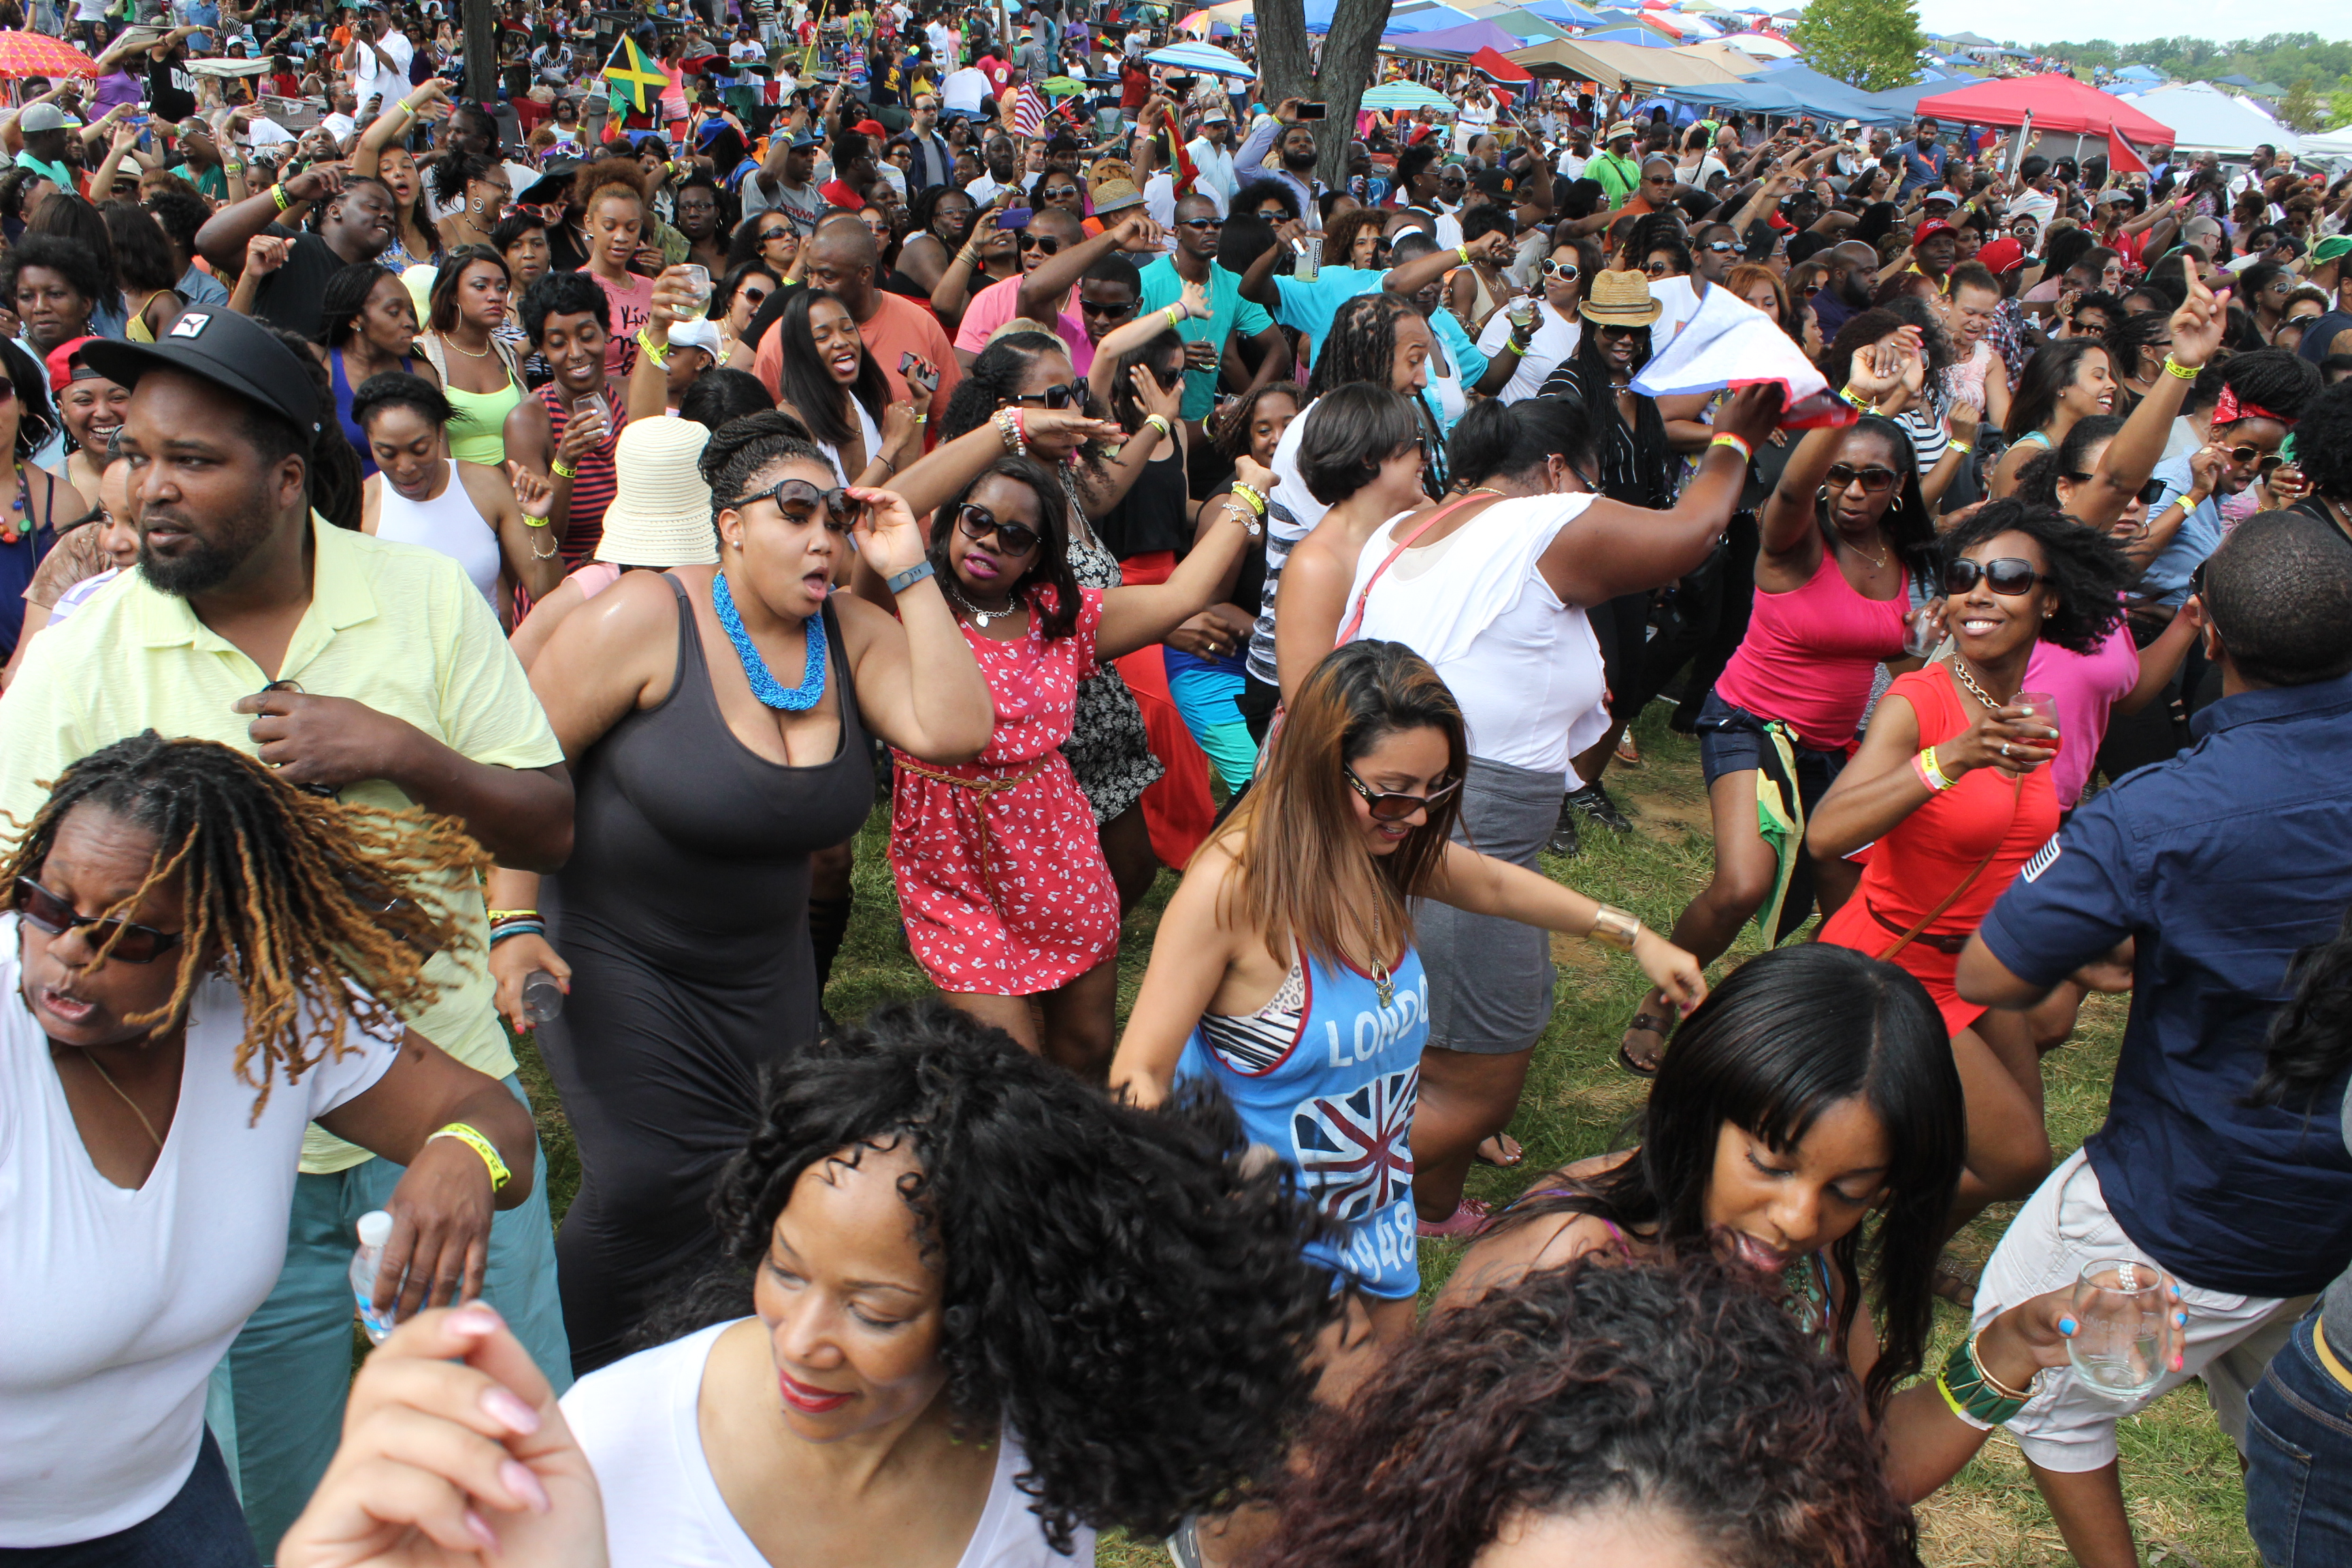 The 2017 Caribbean Wine Festival at Linganore-SOLD OUT  sc 1 st  Goombay DC - LeagueApps & The 2017 Caribbean Wine Festival at Linganore-SOLD OUT : Goombay DC